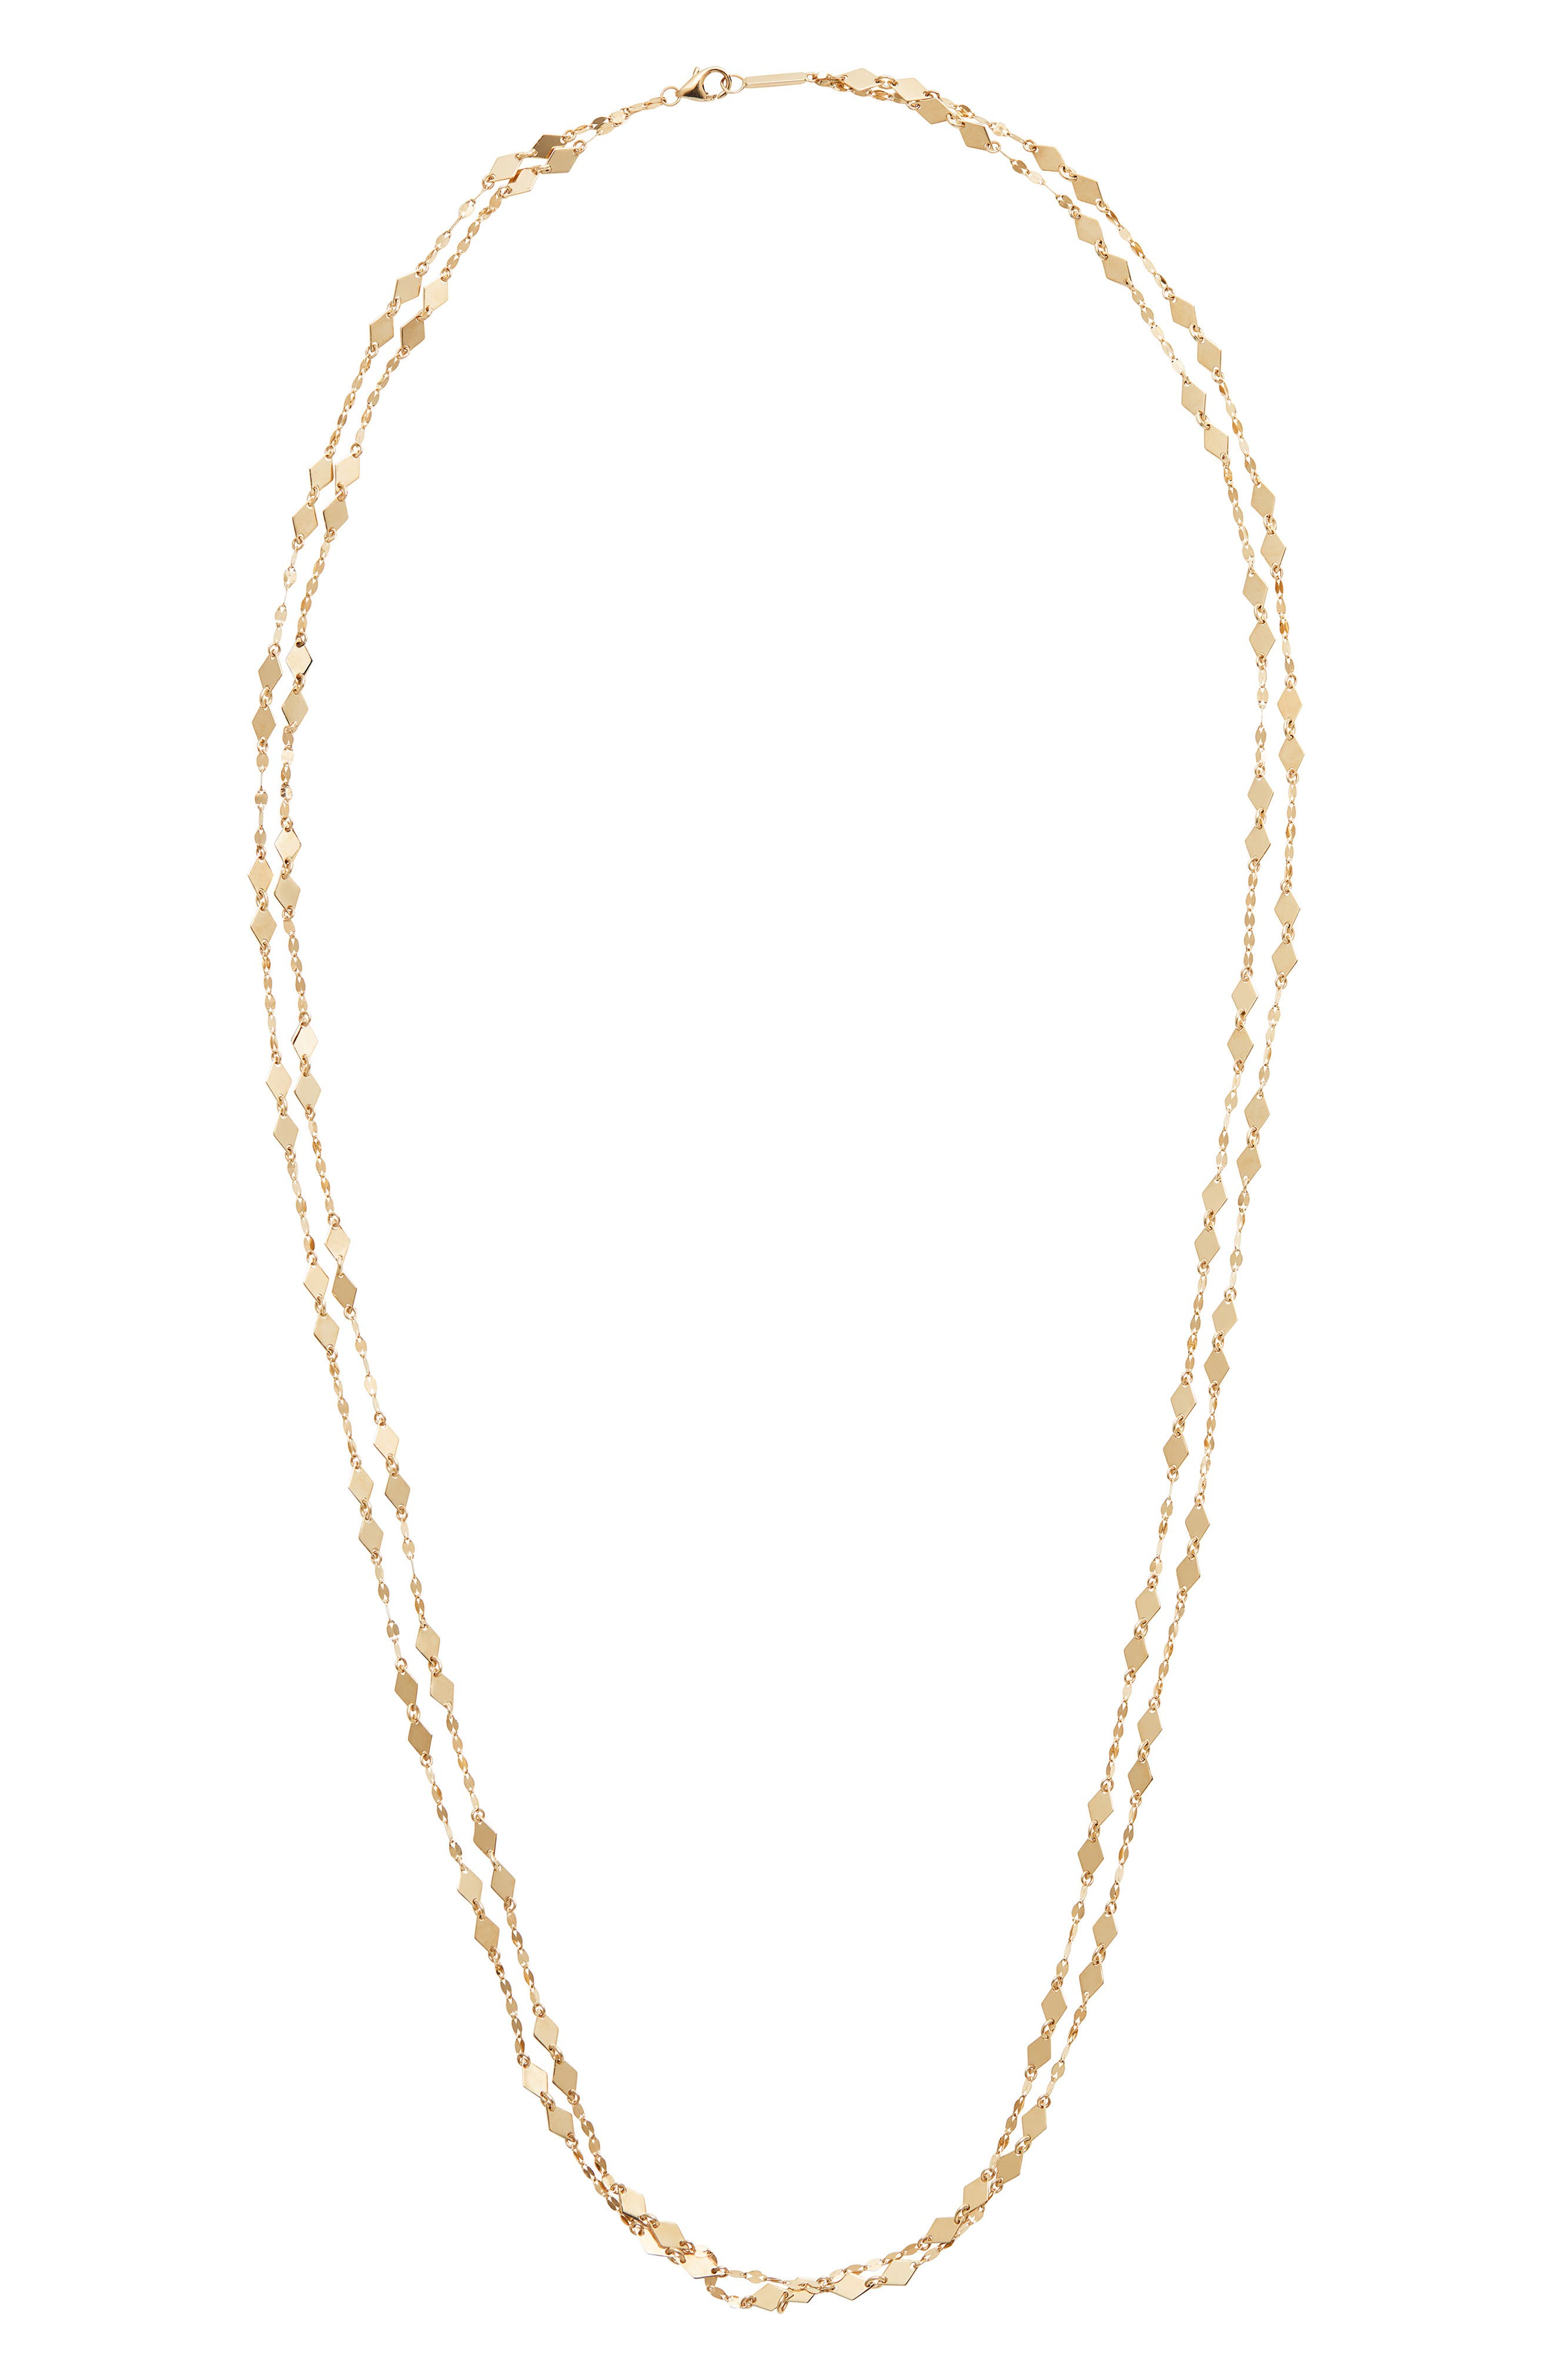 Image of Lana Jewelry 14K Yellow Gold Double Strand Kite Chain Necklace